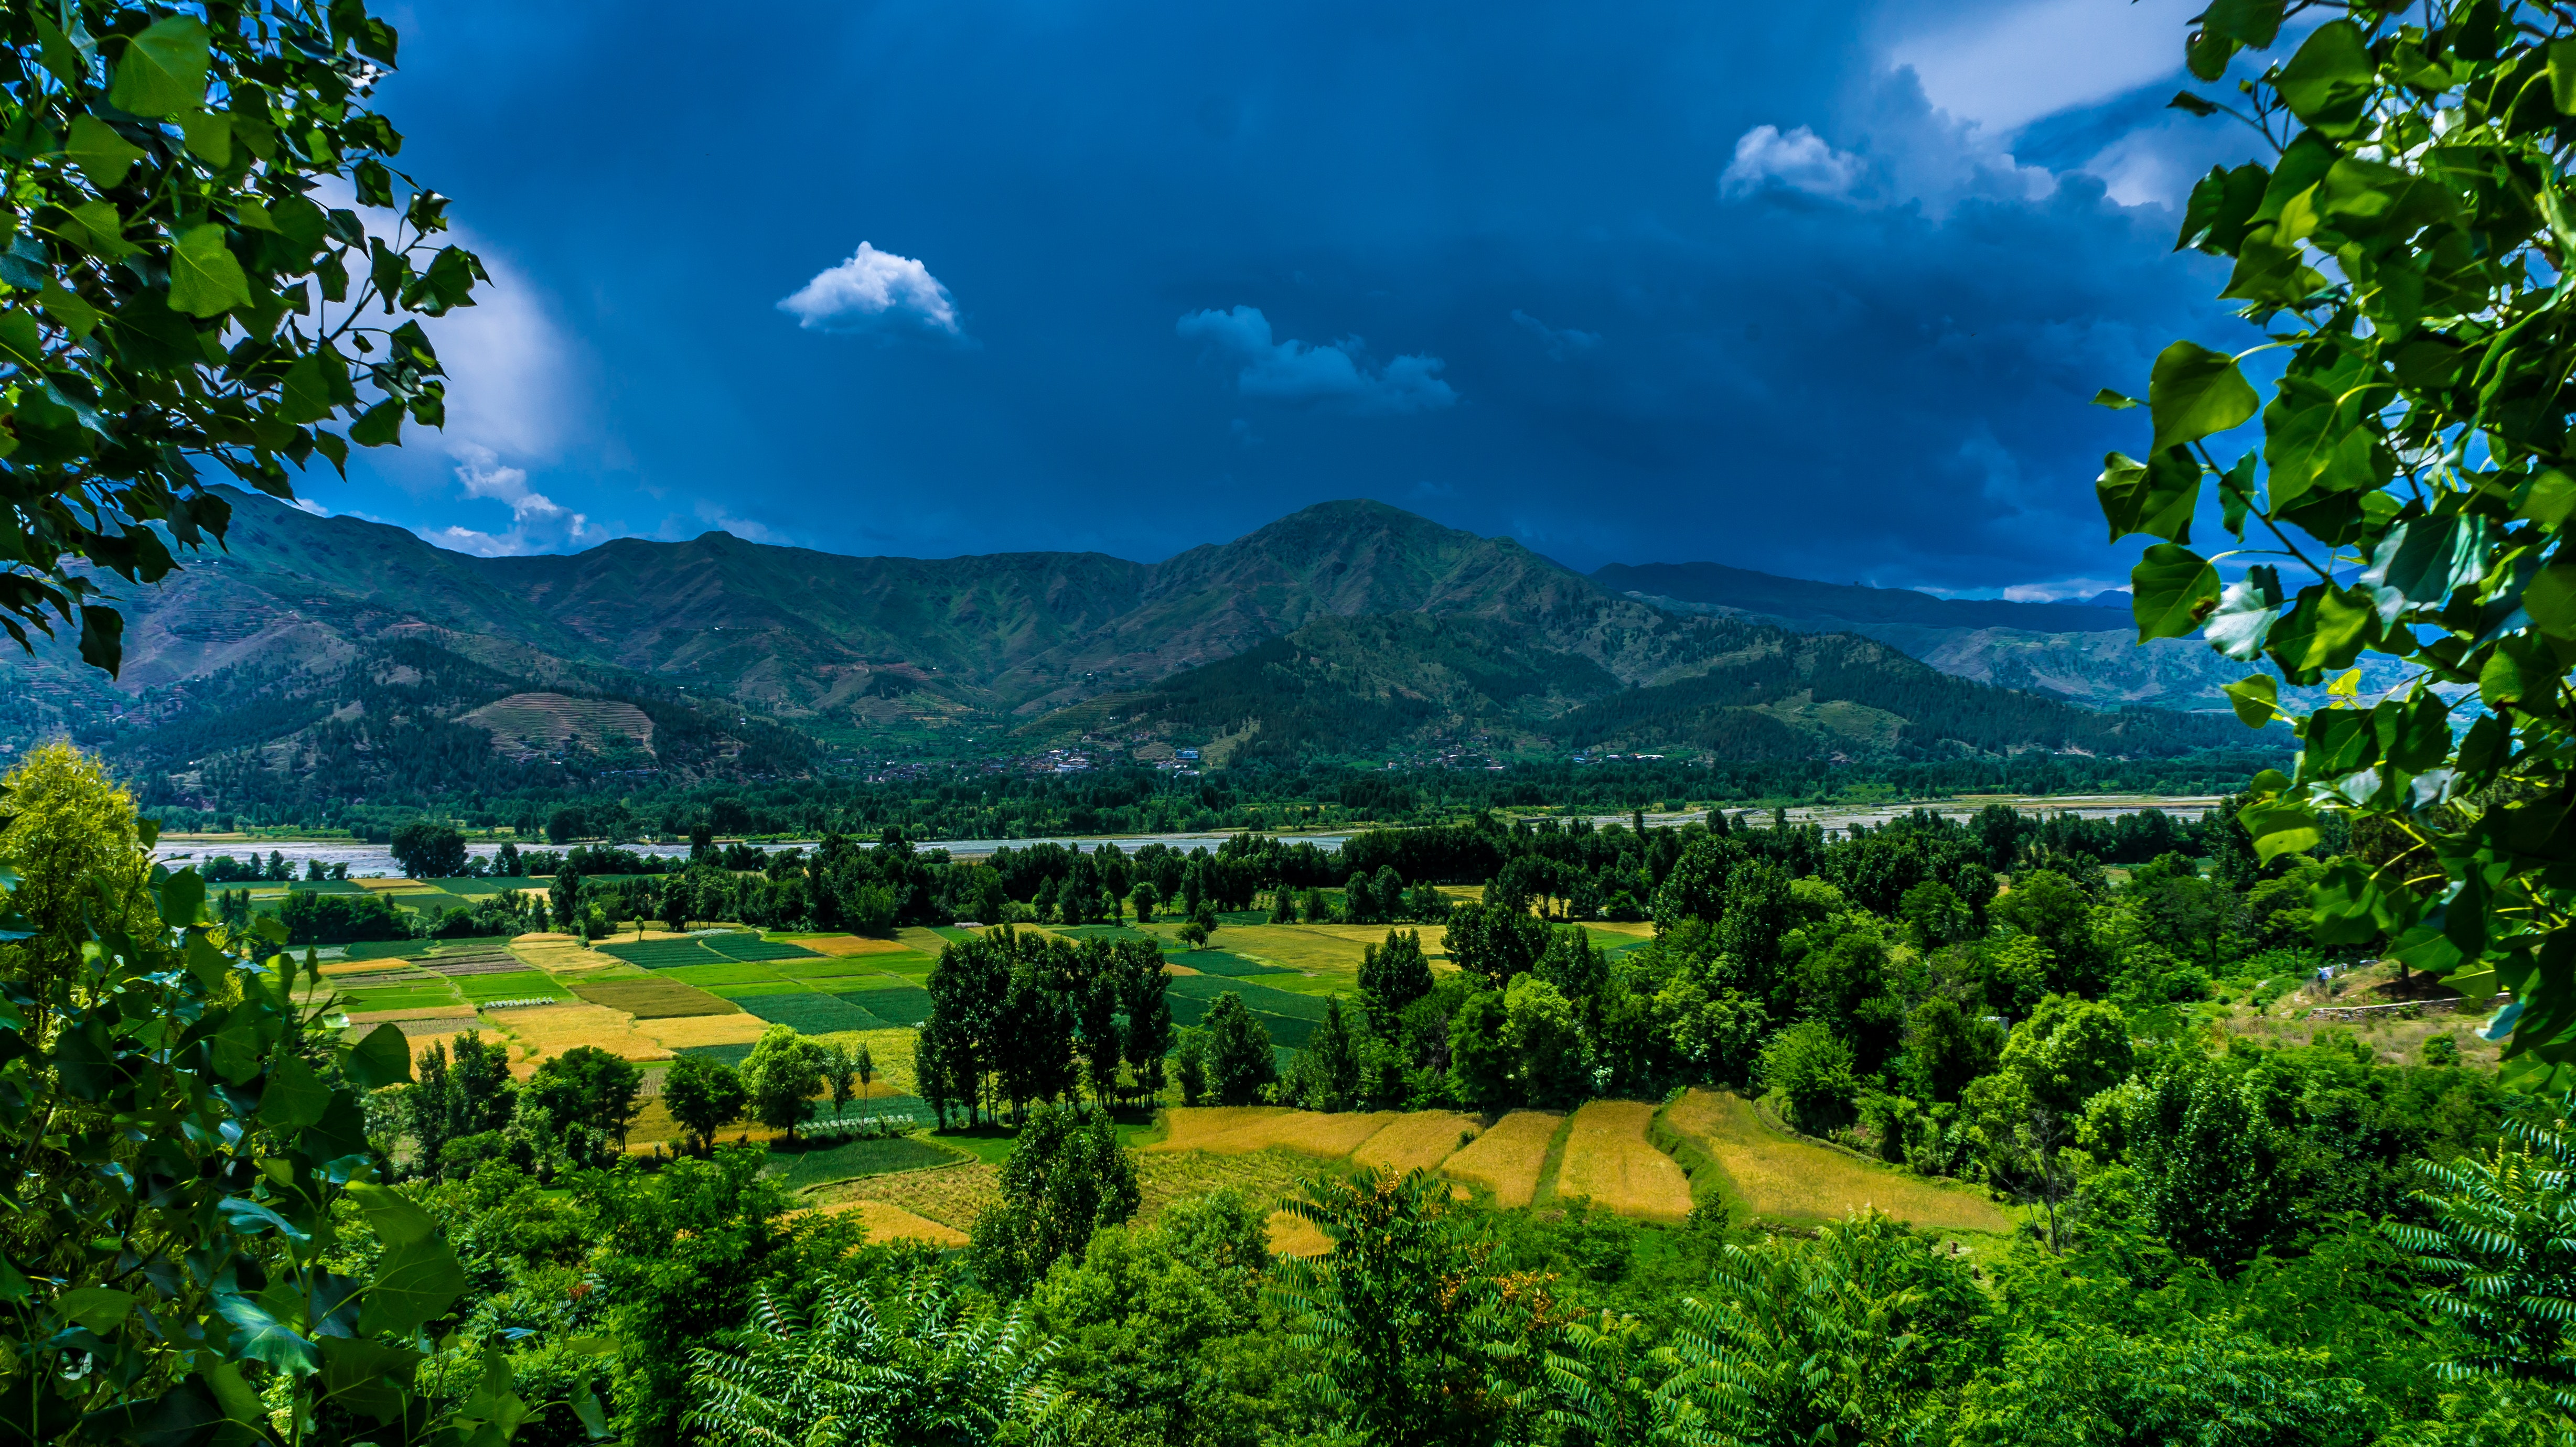 Green Mountain Distance With Trees, Outdoors, Valley, Trees, Travel, HQ Photo